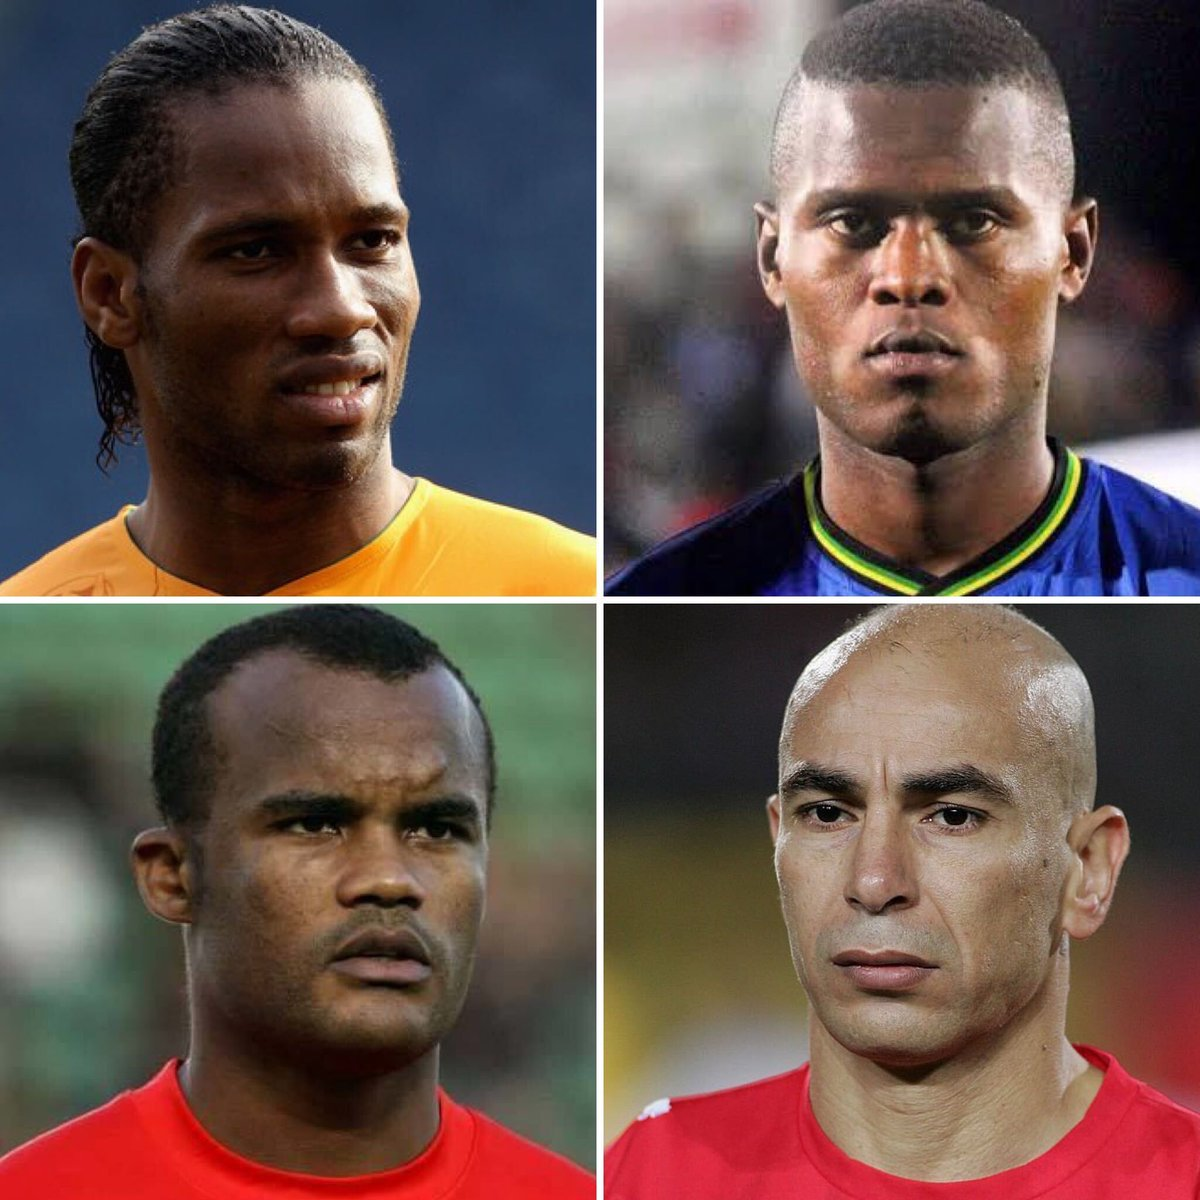 Africa has seen several excellent headers of the ball, some of the most renowned ones are 🇨🇮 @didierdrogba, 🇹🇿 @Samagoal77_, 🇦🇴 Flávio & 🇪🇬 Hossam Hassan.  Who else would you include on this list? 💆‍♂️ https://t.co/faxsvk8YuE